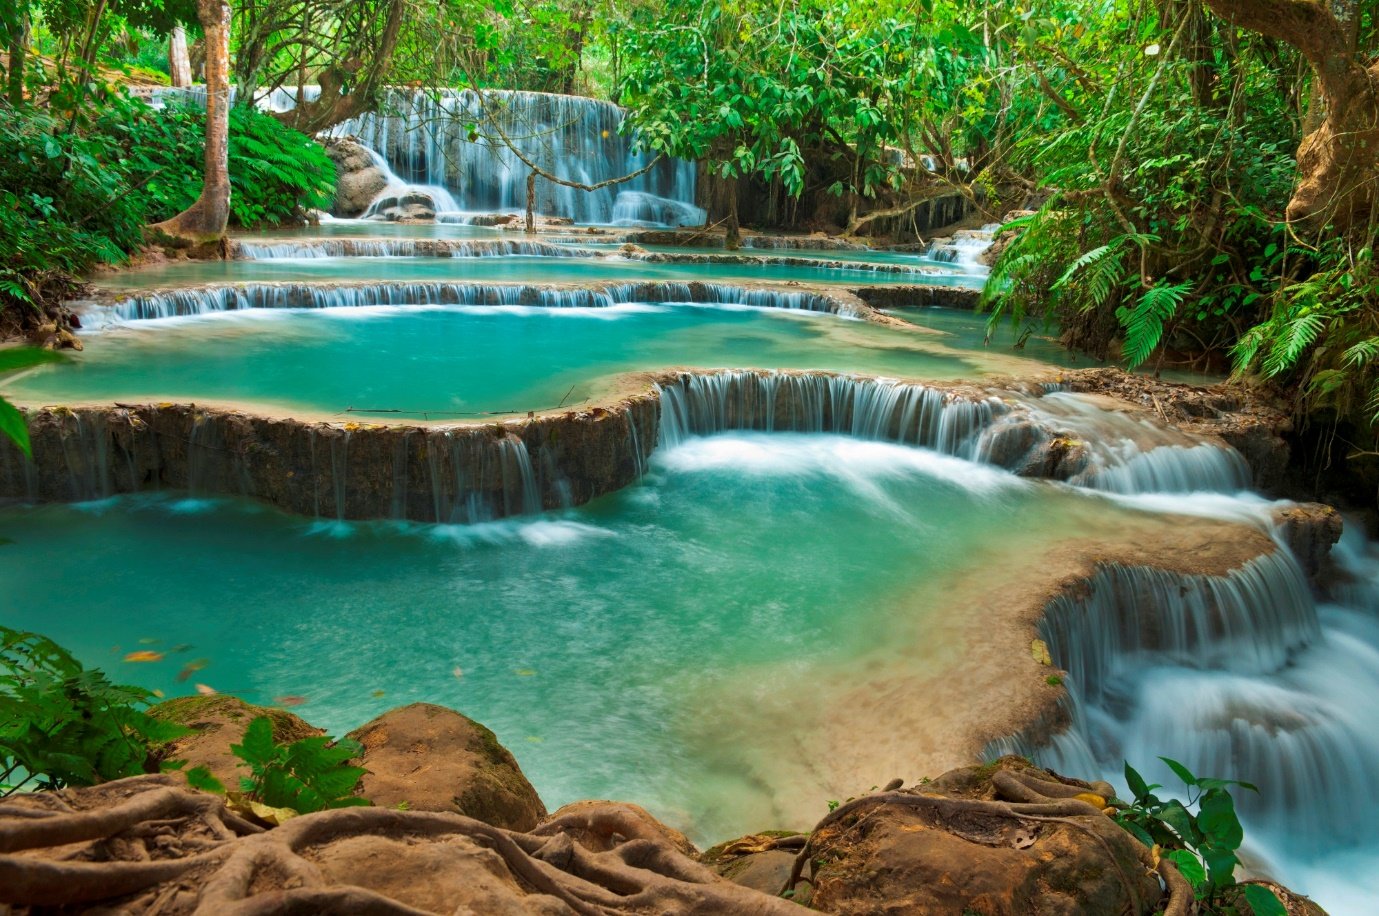 The Kuang Si Waterfall, the most beautiful waterfall in the area